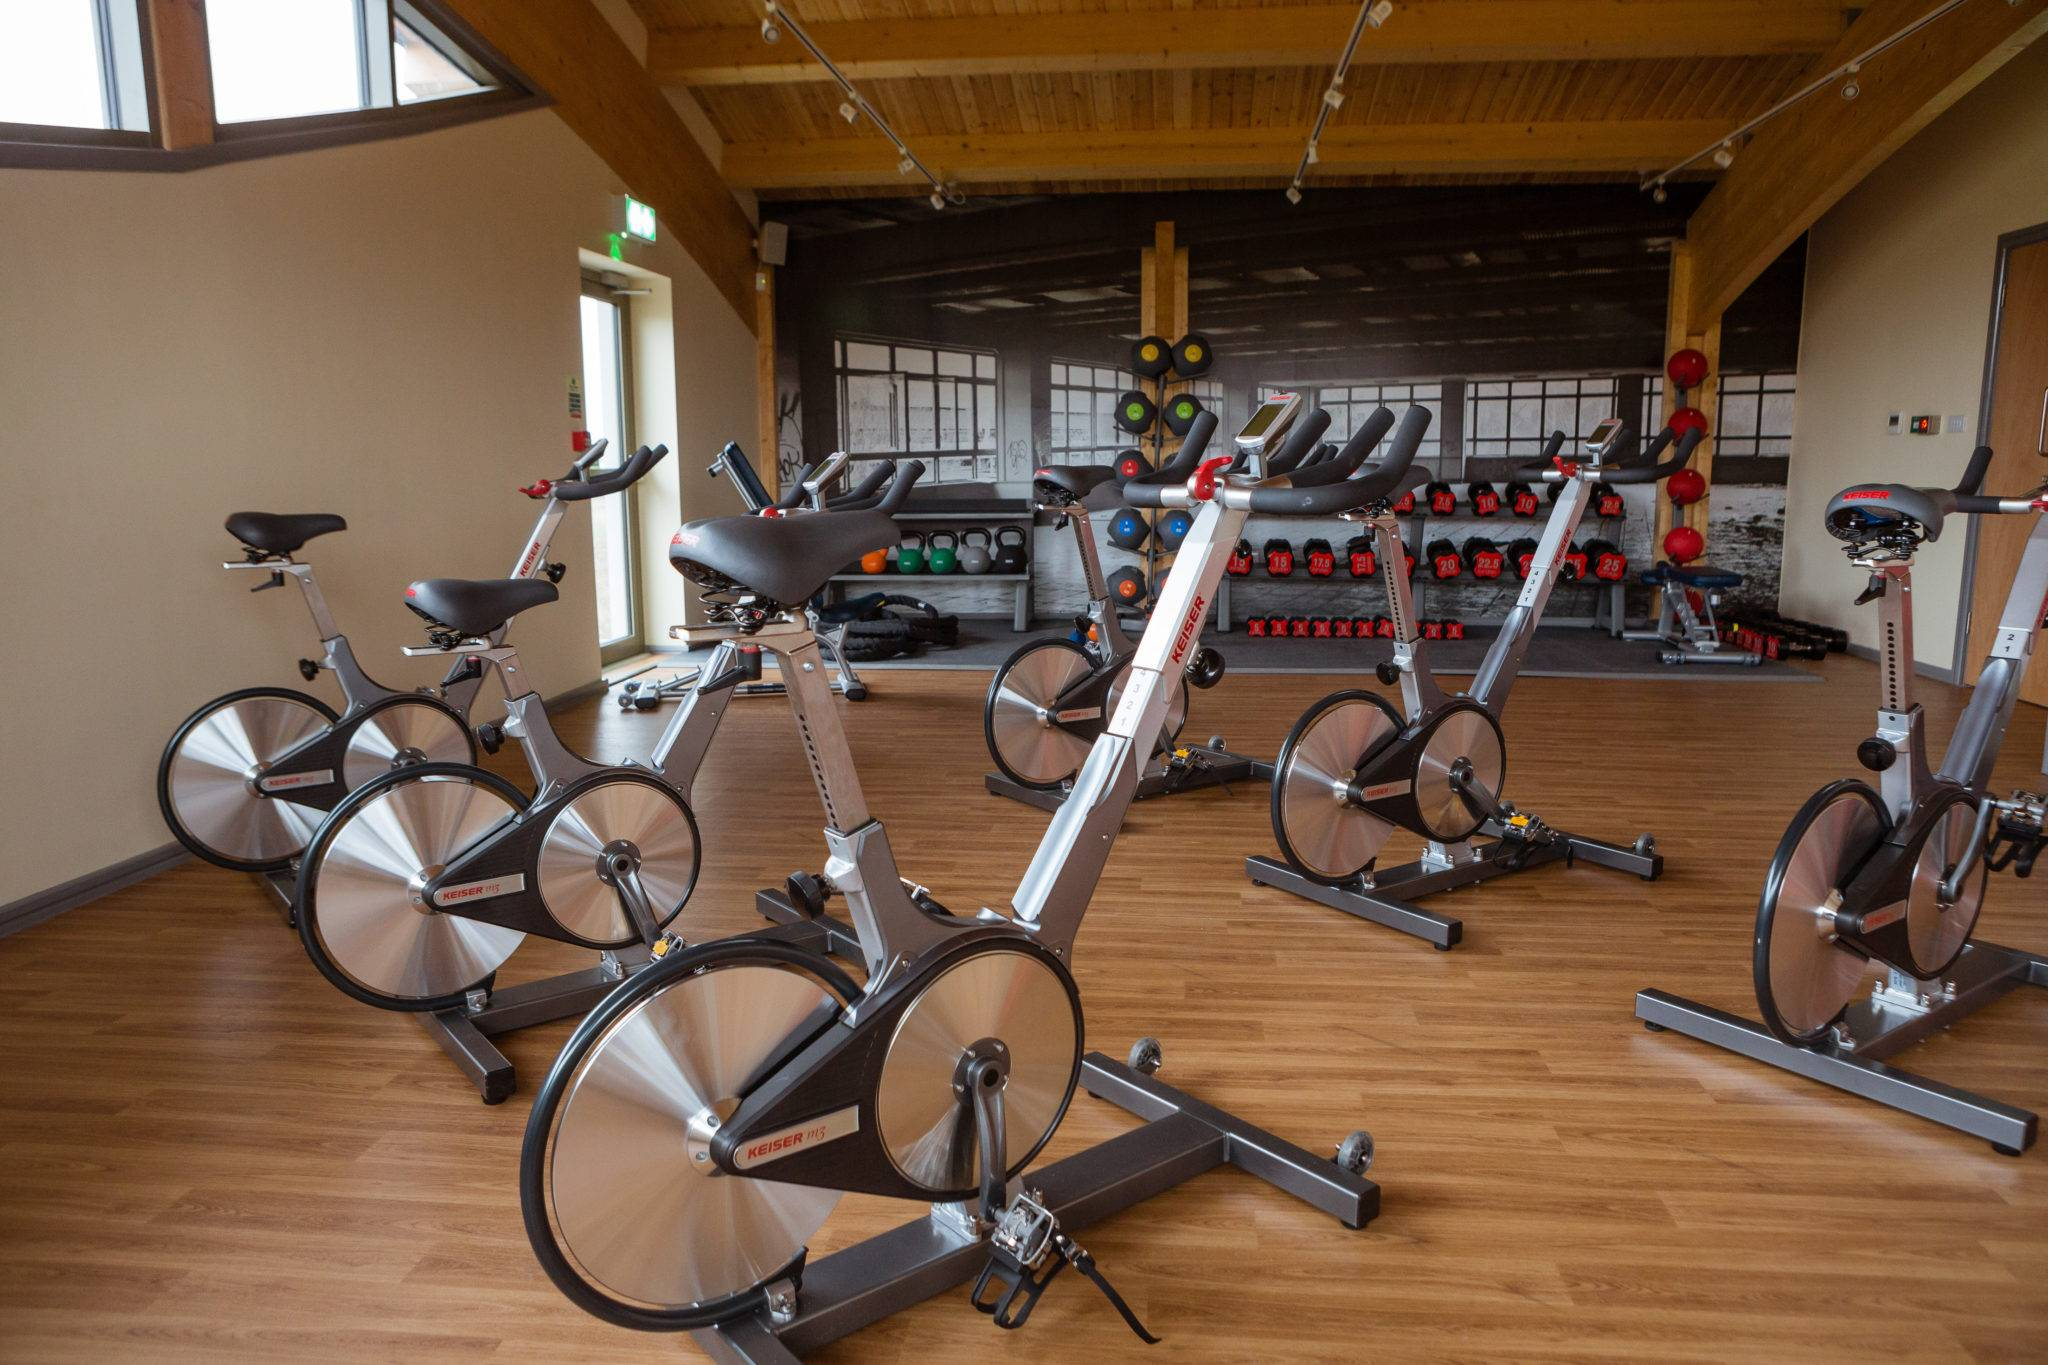 https://silverbay.co.uk/wp-content/uploads/2016/12/silver-bay-holiday-village-anglesey-spa-and-leisure-spinning-bikes-gym.jpg